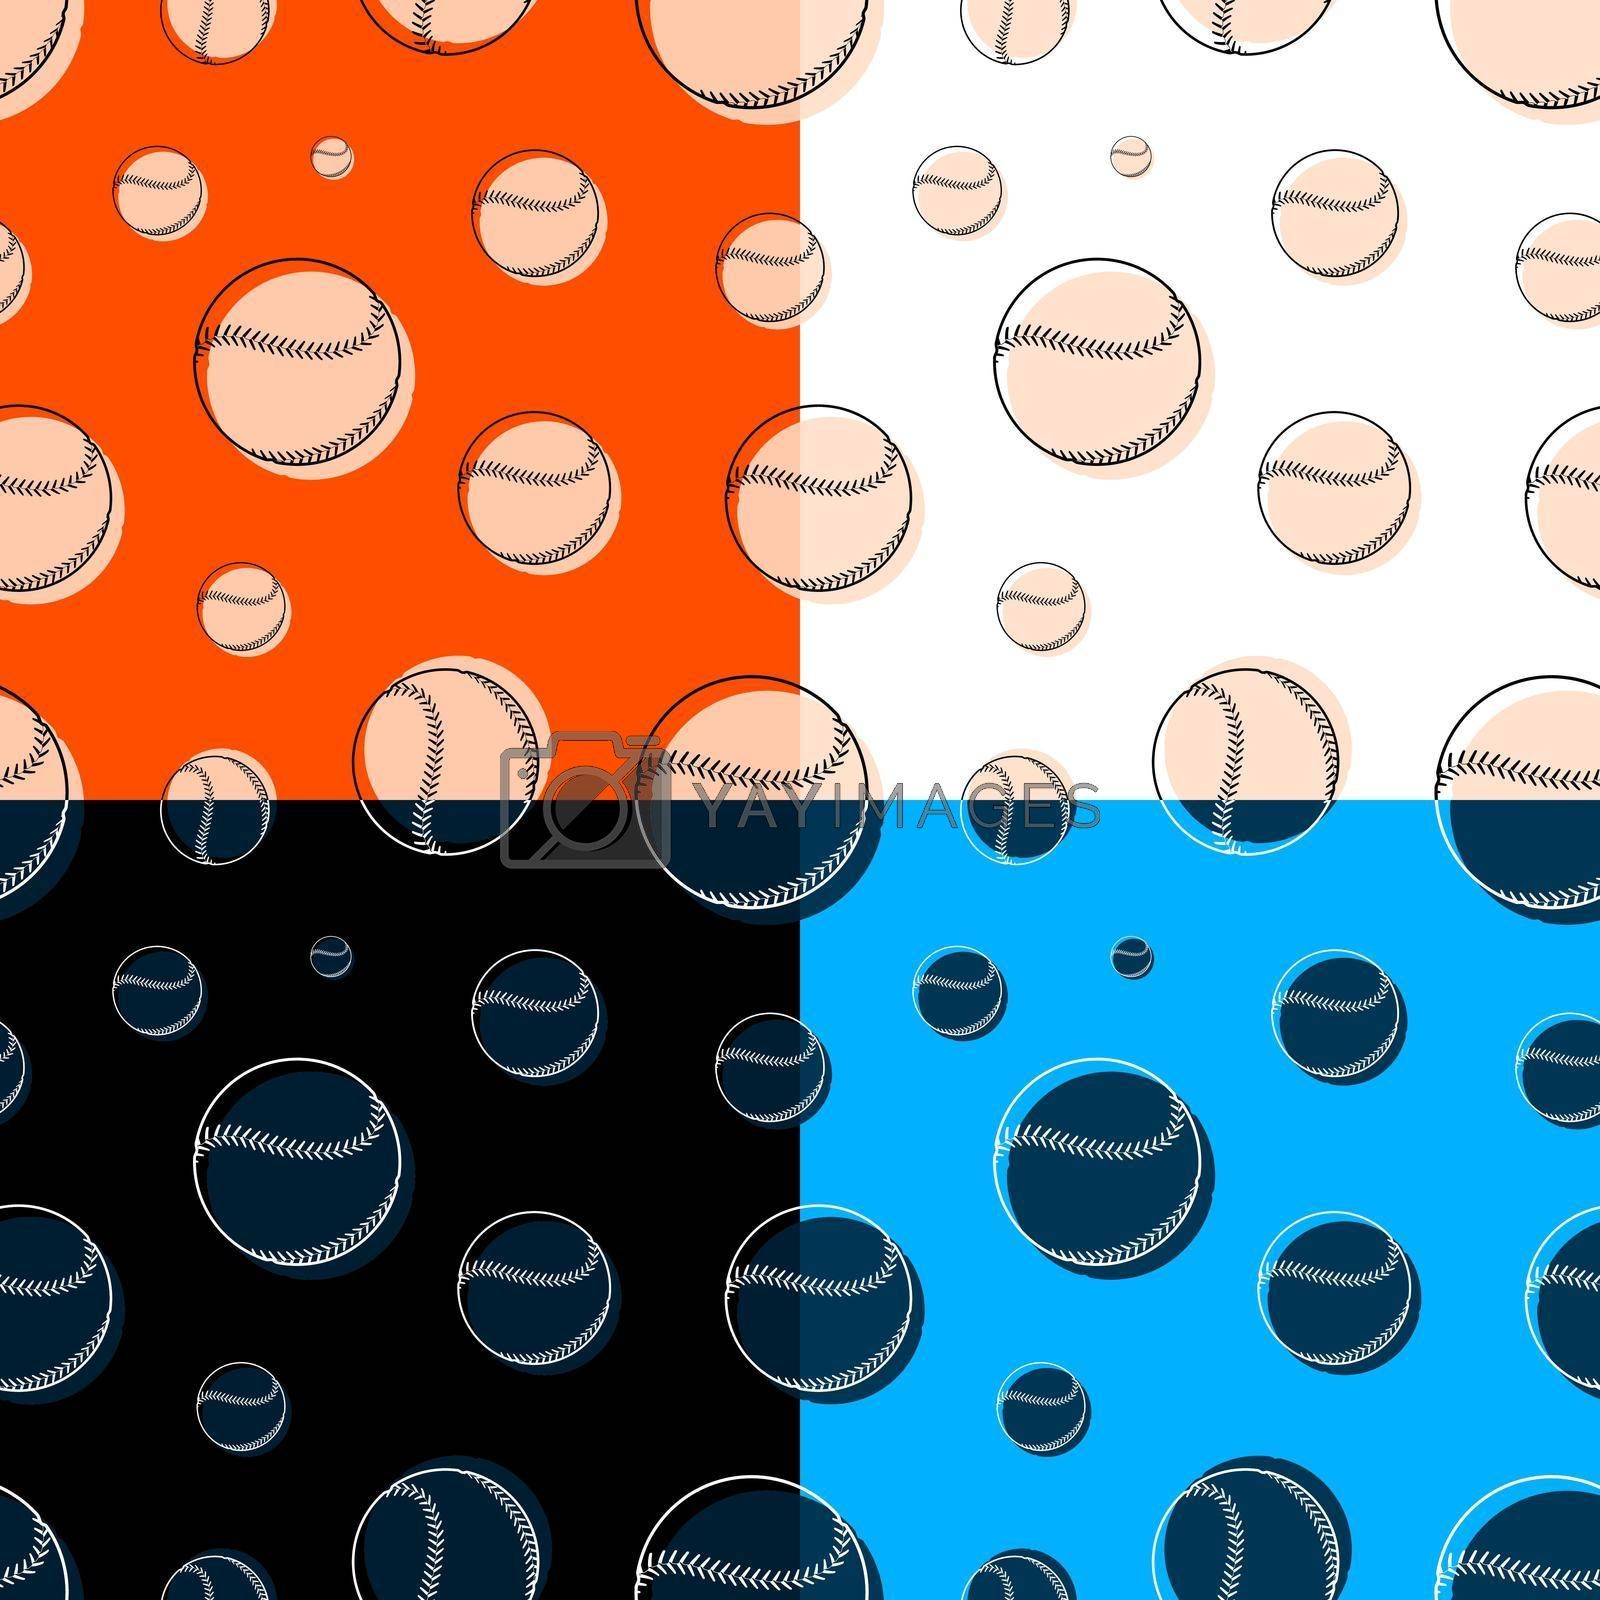 set of seamless patterns with baseball sport balls. Team sports. Healthy lifestyle. Ornament for printing and decoration of sports competitions. Vector